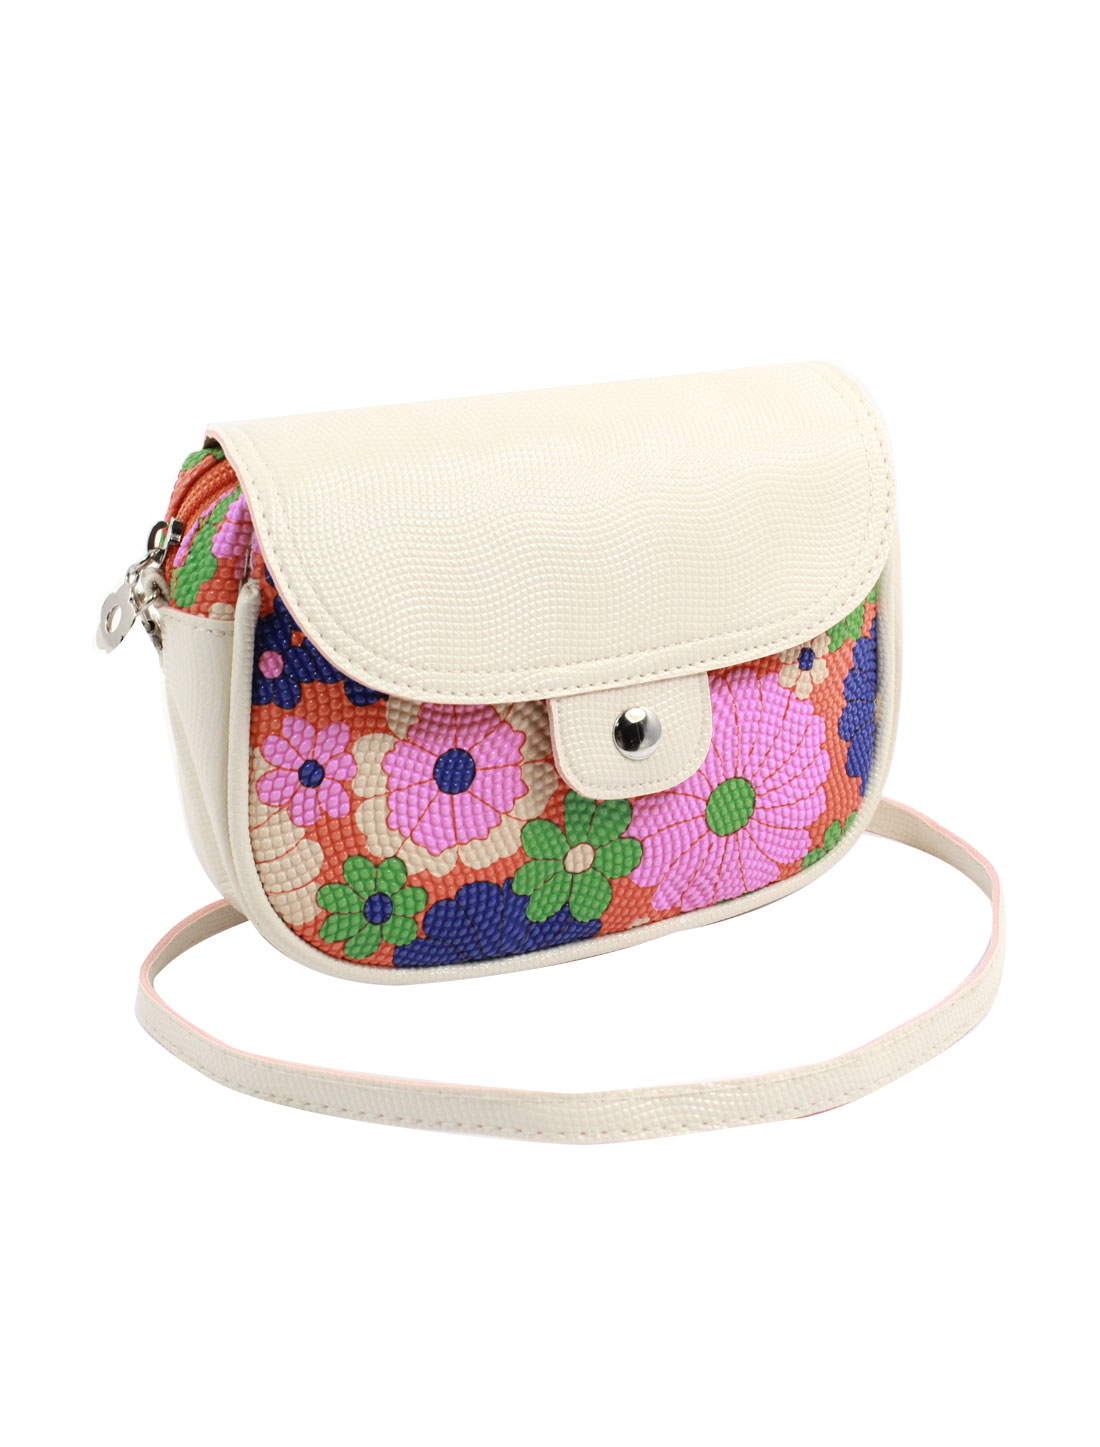 Women 2 Pockets Magnet Button Zipper Closure Floral Print Faux Leather Wallet Purse Bag Pink Orange Green w Shoulder Strap